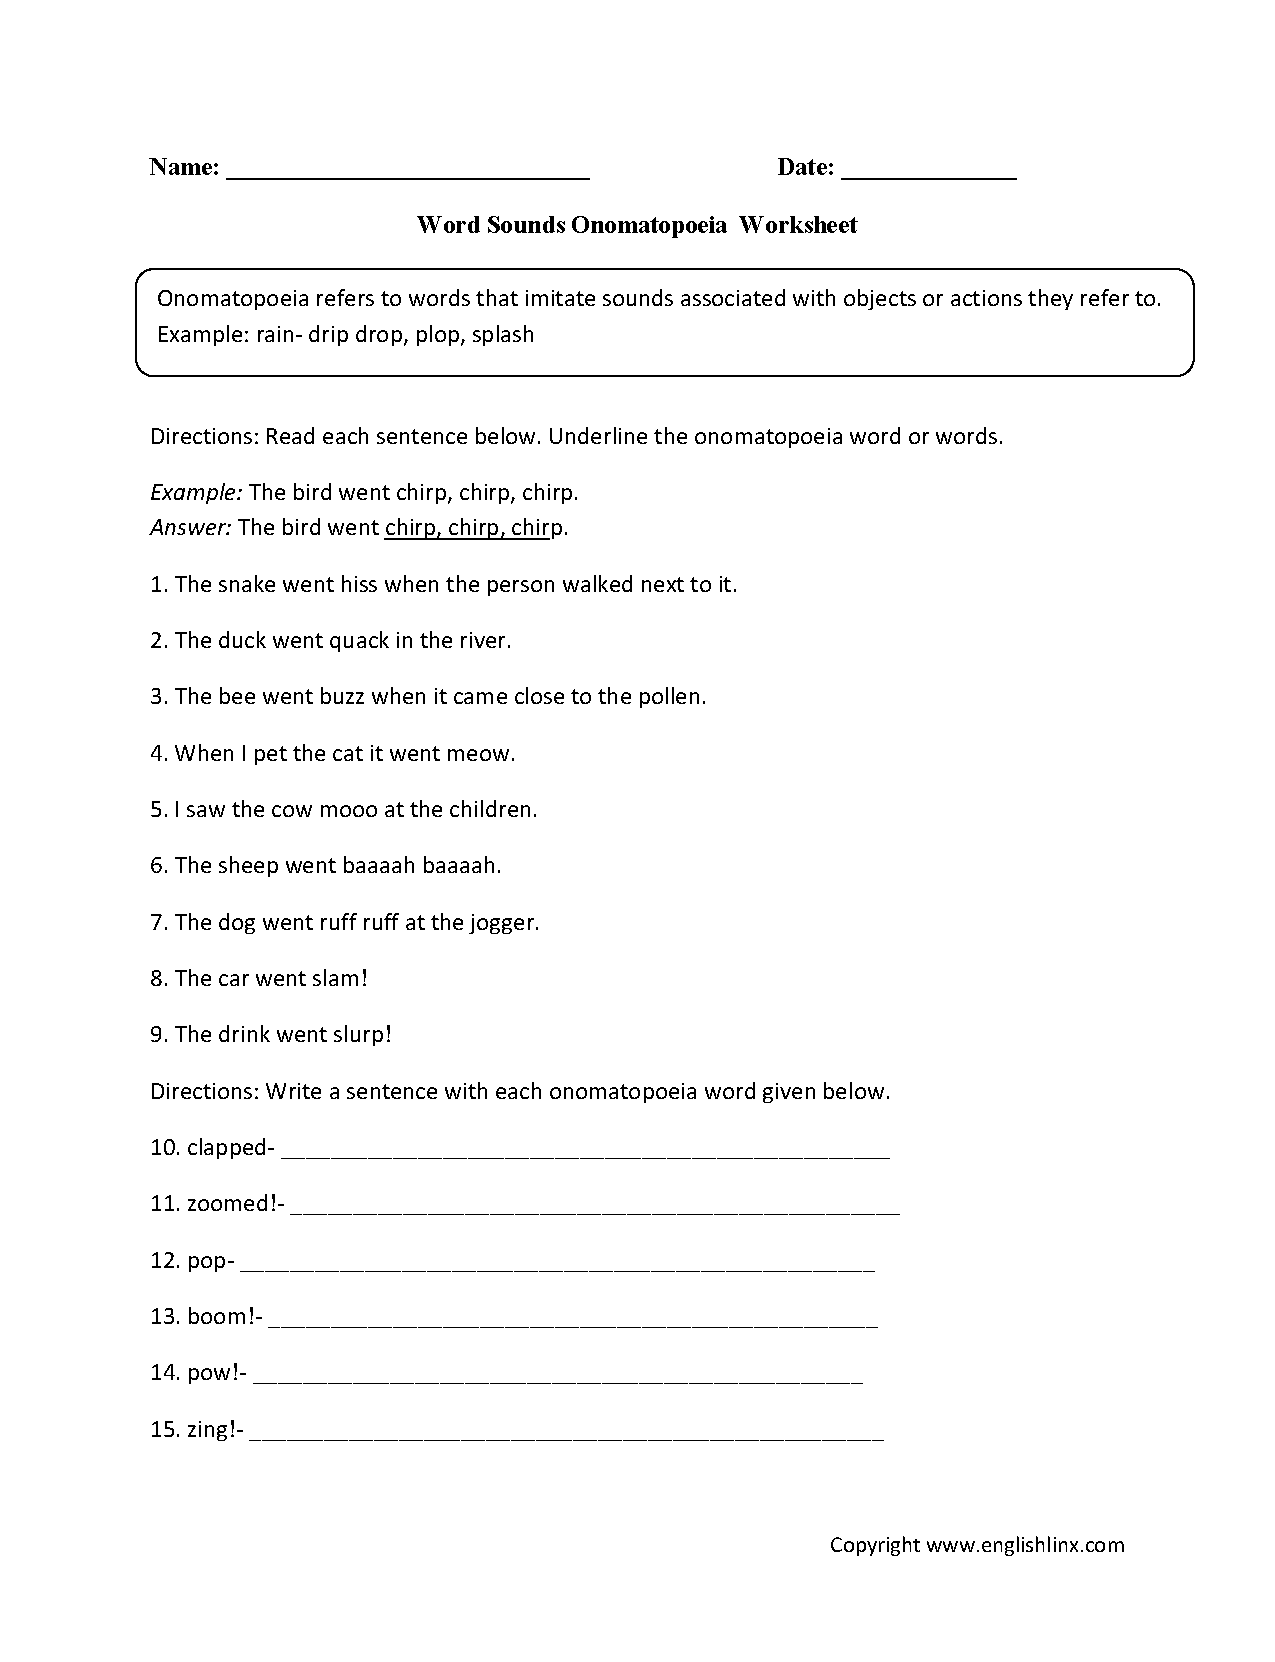 Worksheets Onomatopoeia Worksheet figurative language worksheets onomatopoeia worksheet